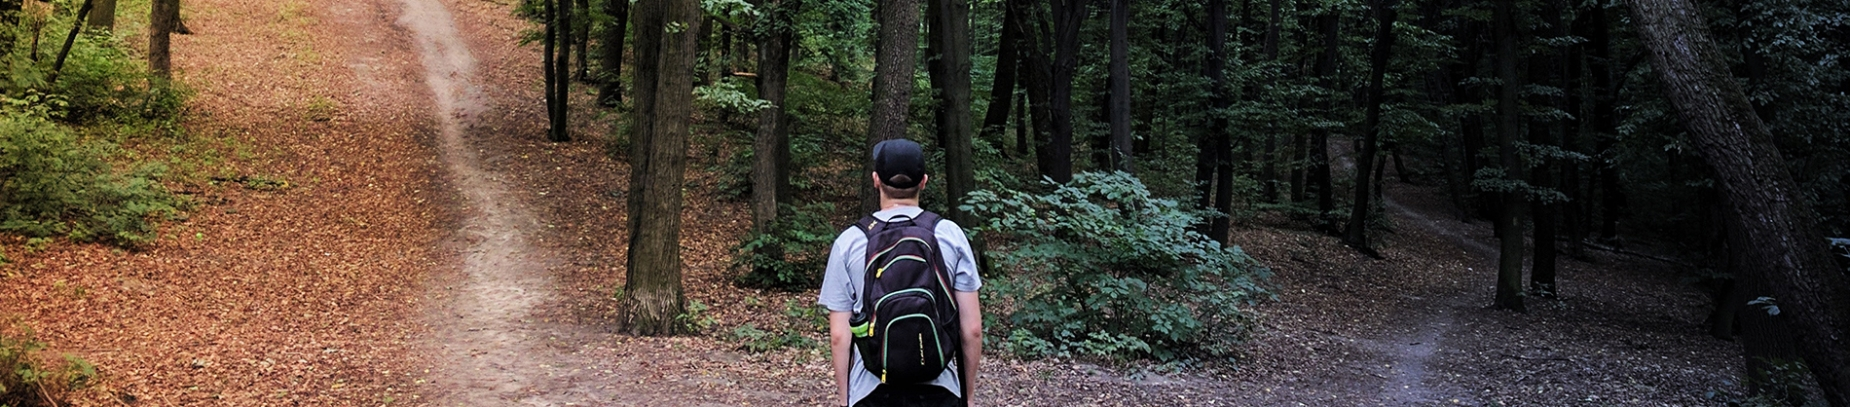 A man stood in a forest looking at two paths in front of him